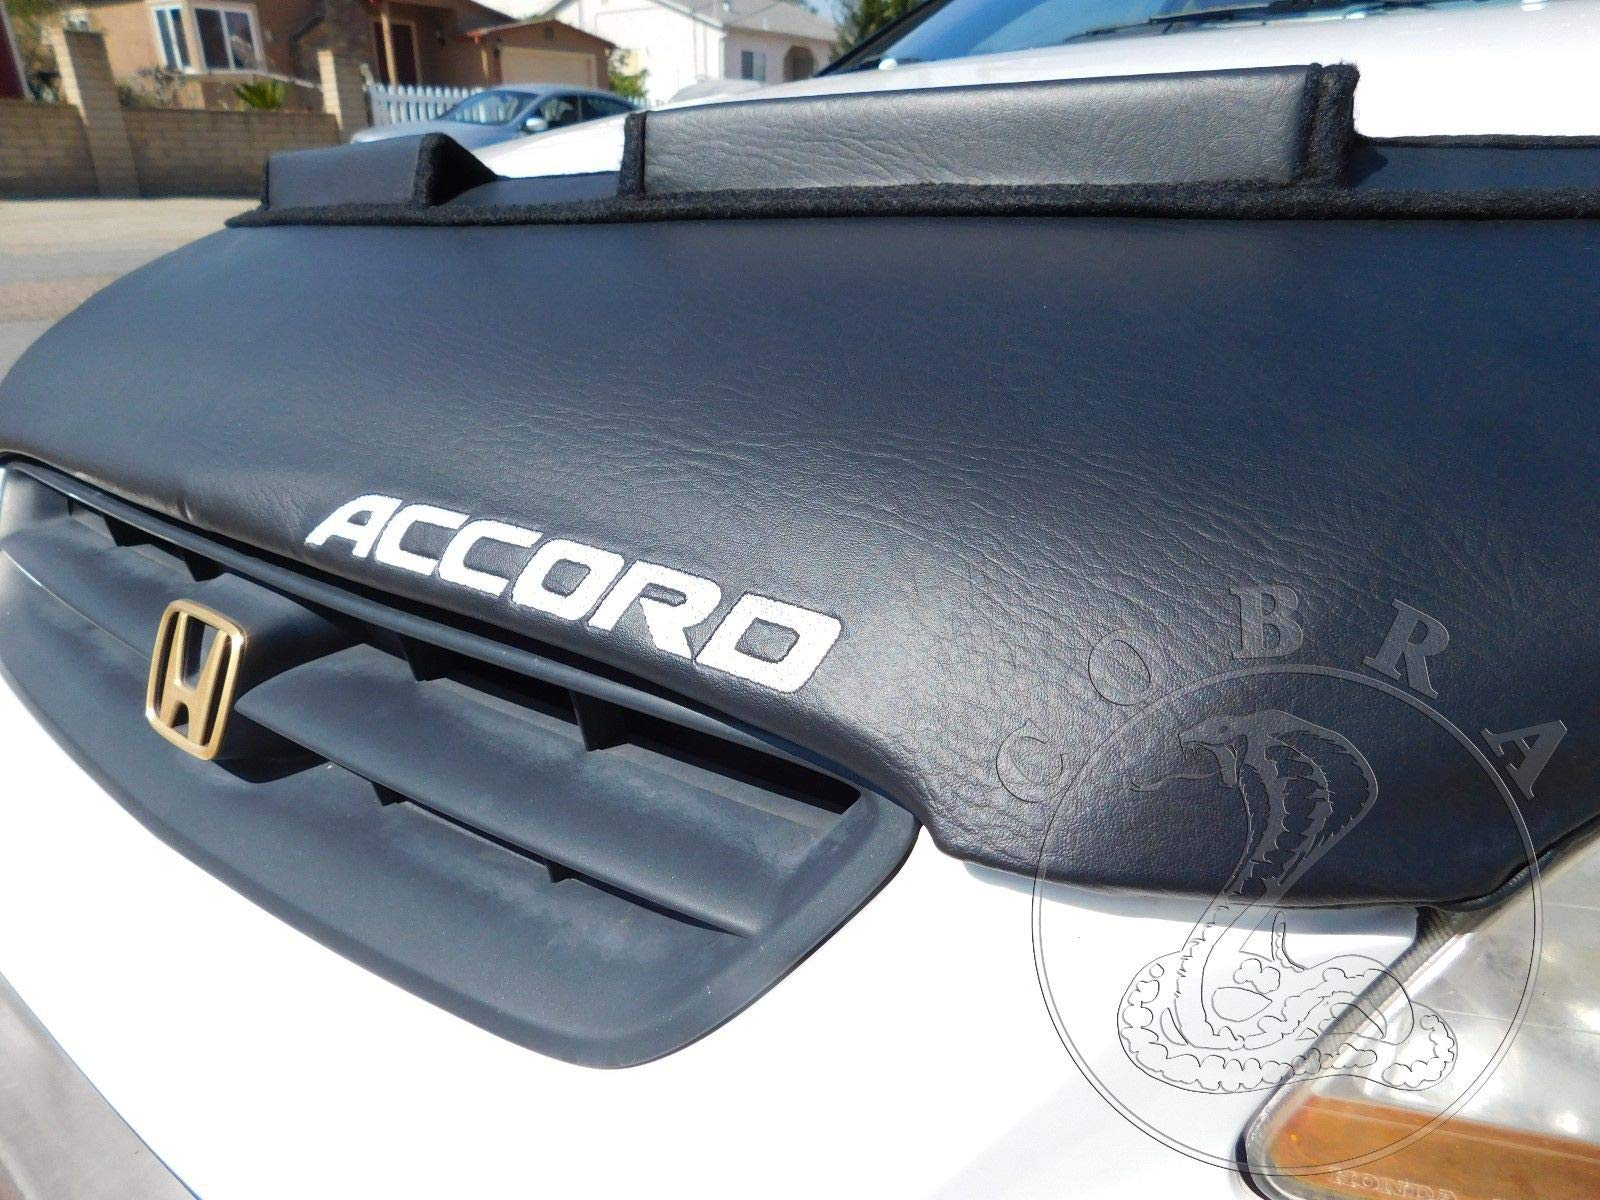 Cobra Auto Accessories Car Bonnet Hood Bra + Accord Logo Fits Honda Accord 98 99 2000 01 02 Sedan Coupe